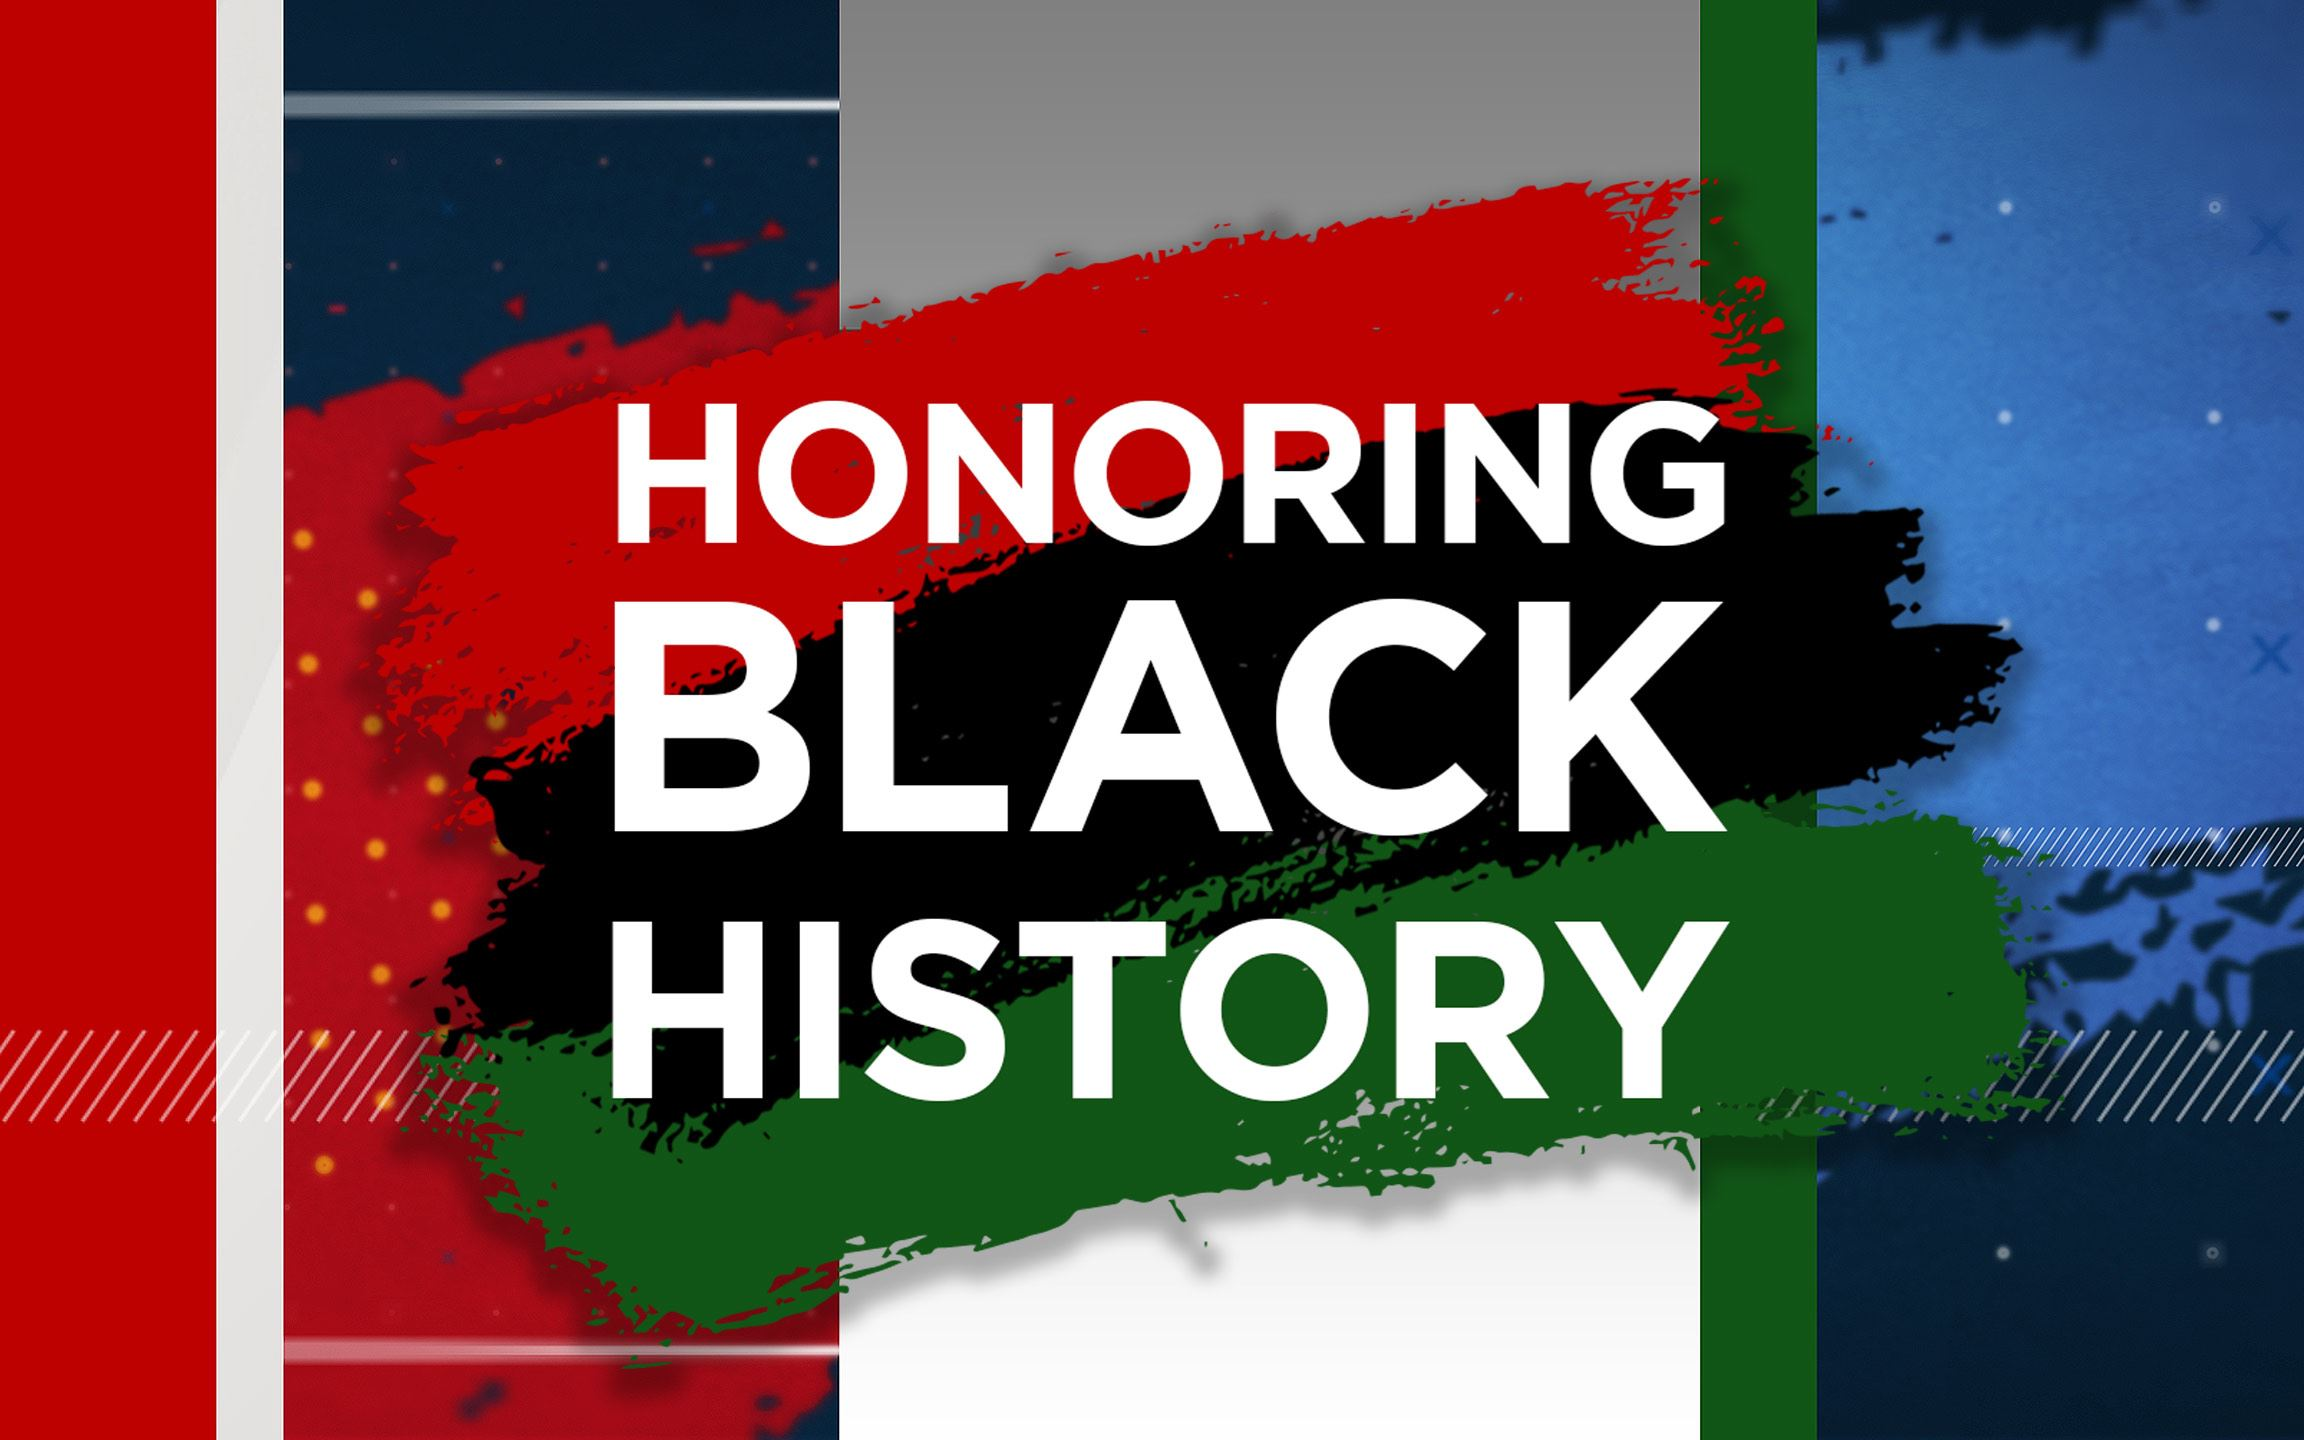 Submit your photos to honor Black History Month | WFLA